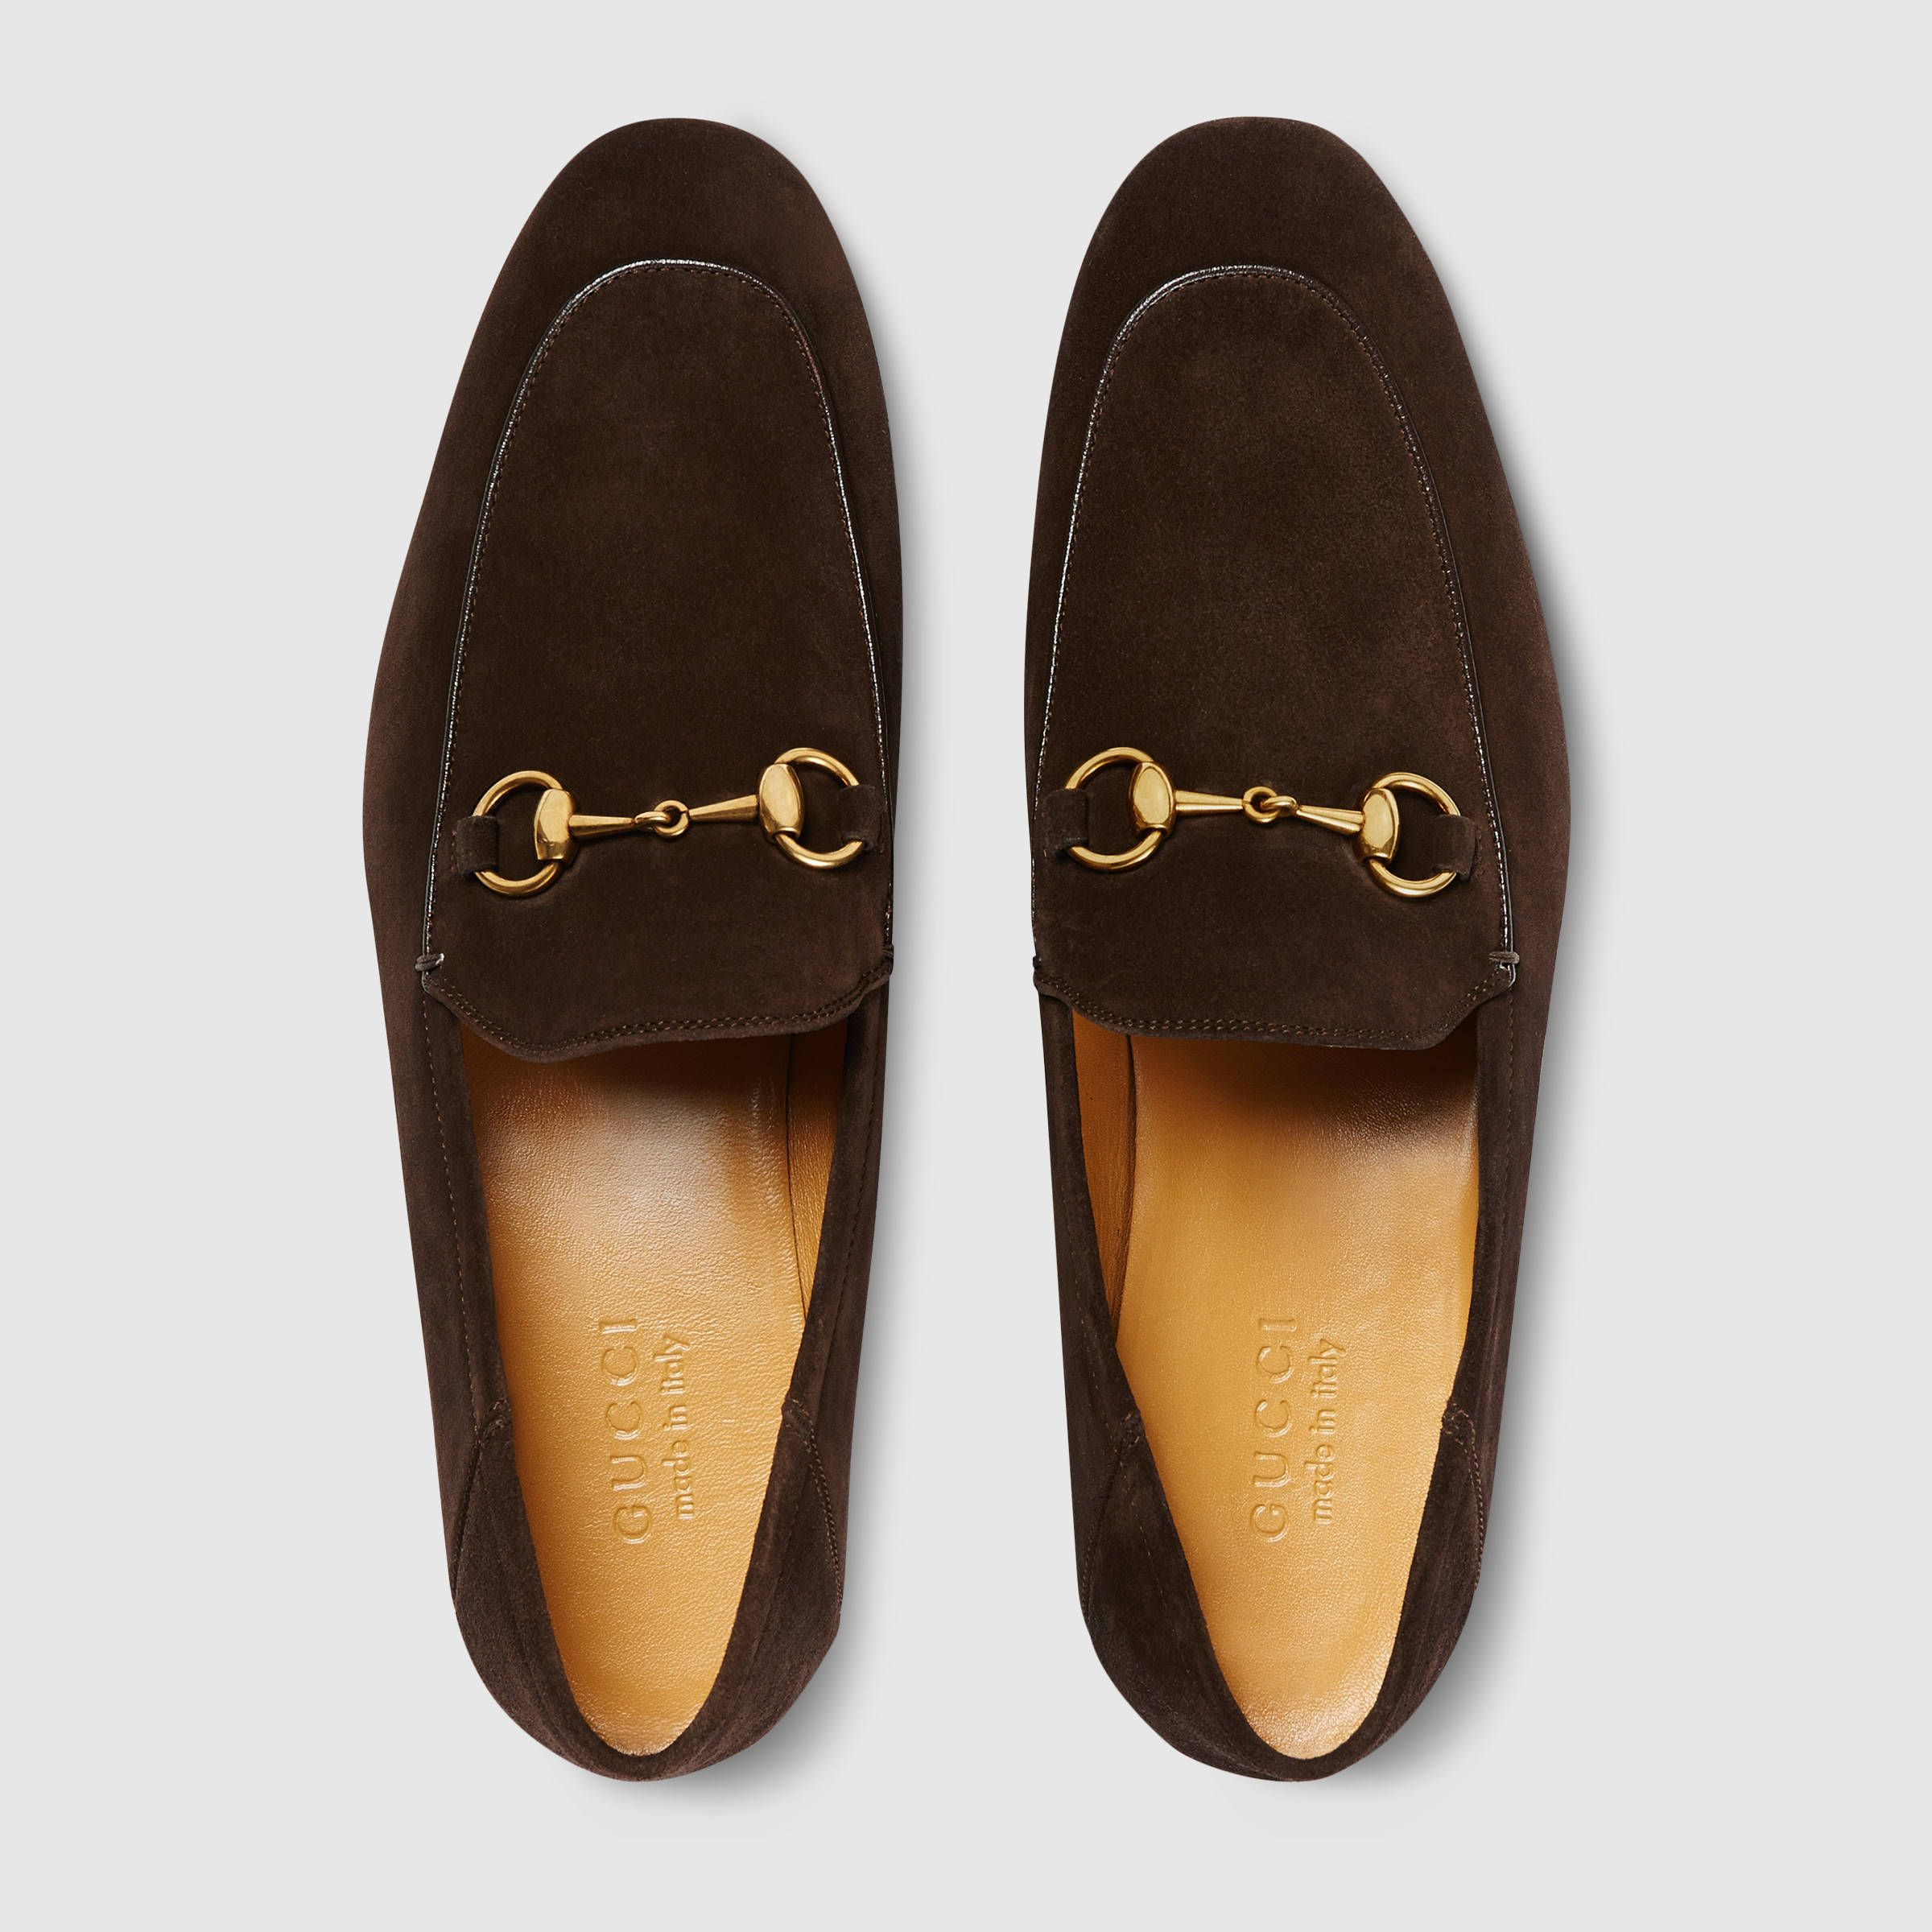 3cf485132c8 Gucci Suede Horsebit loafer Detail 3